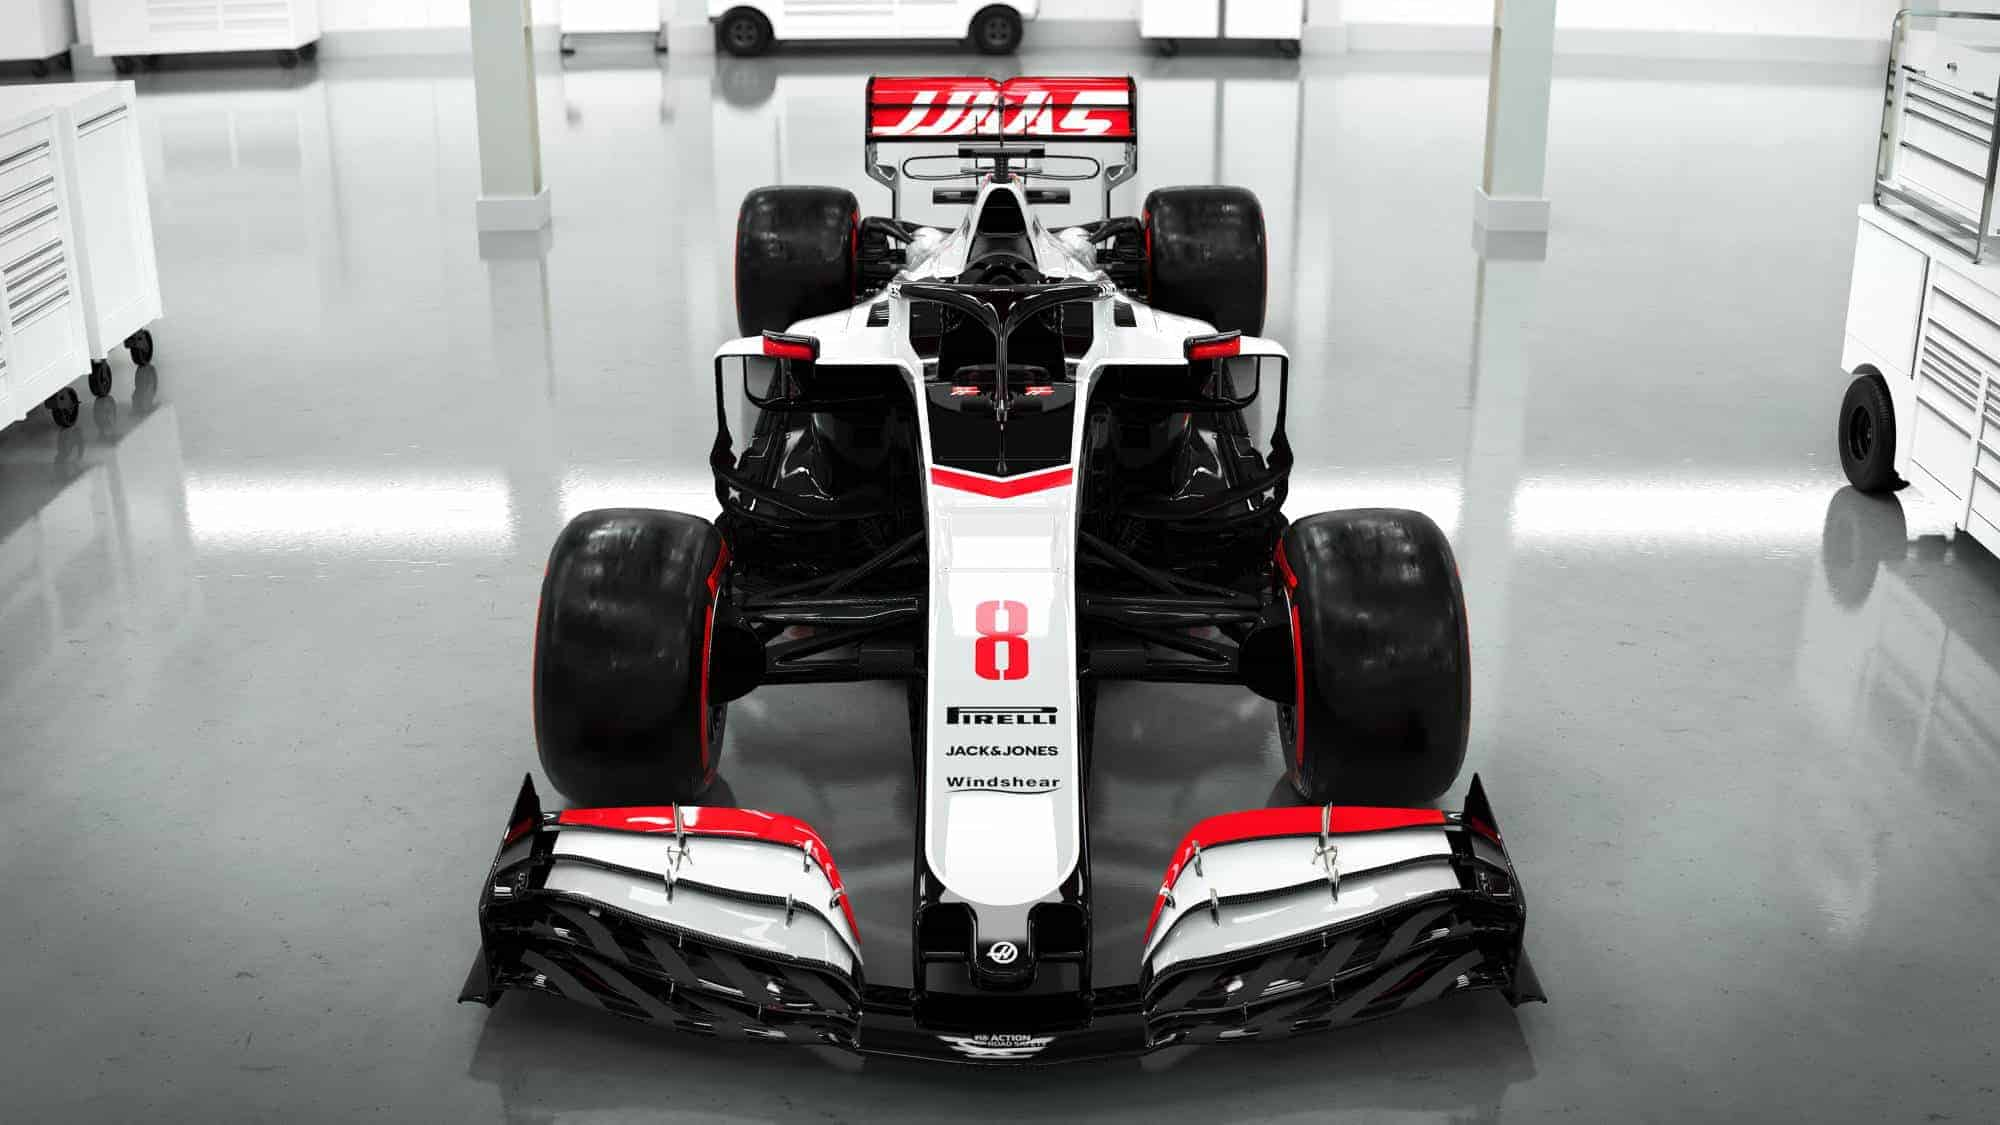 Haas VF20 F1 2020 car front view Photo Haas 2000px